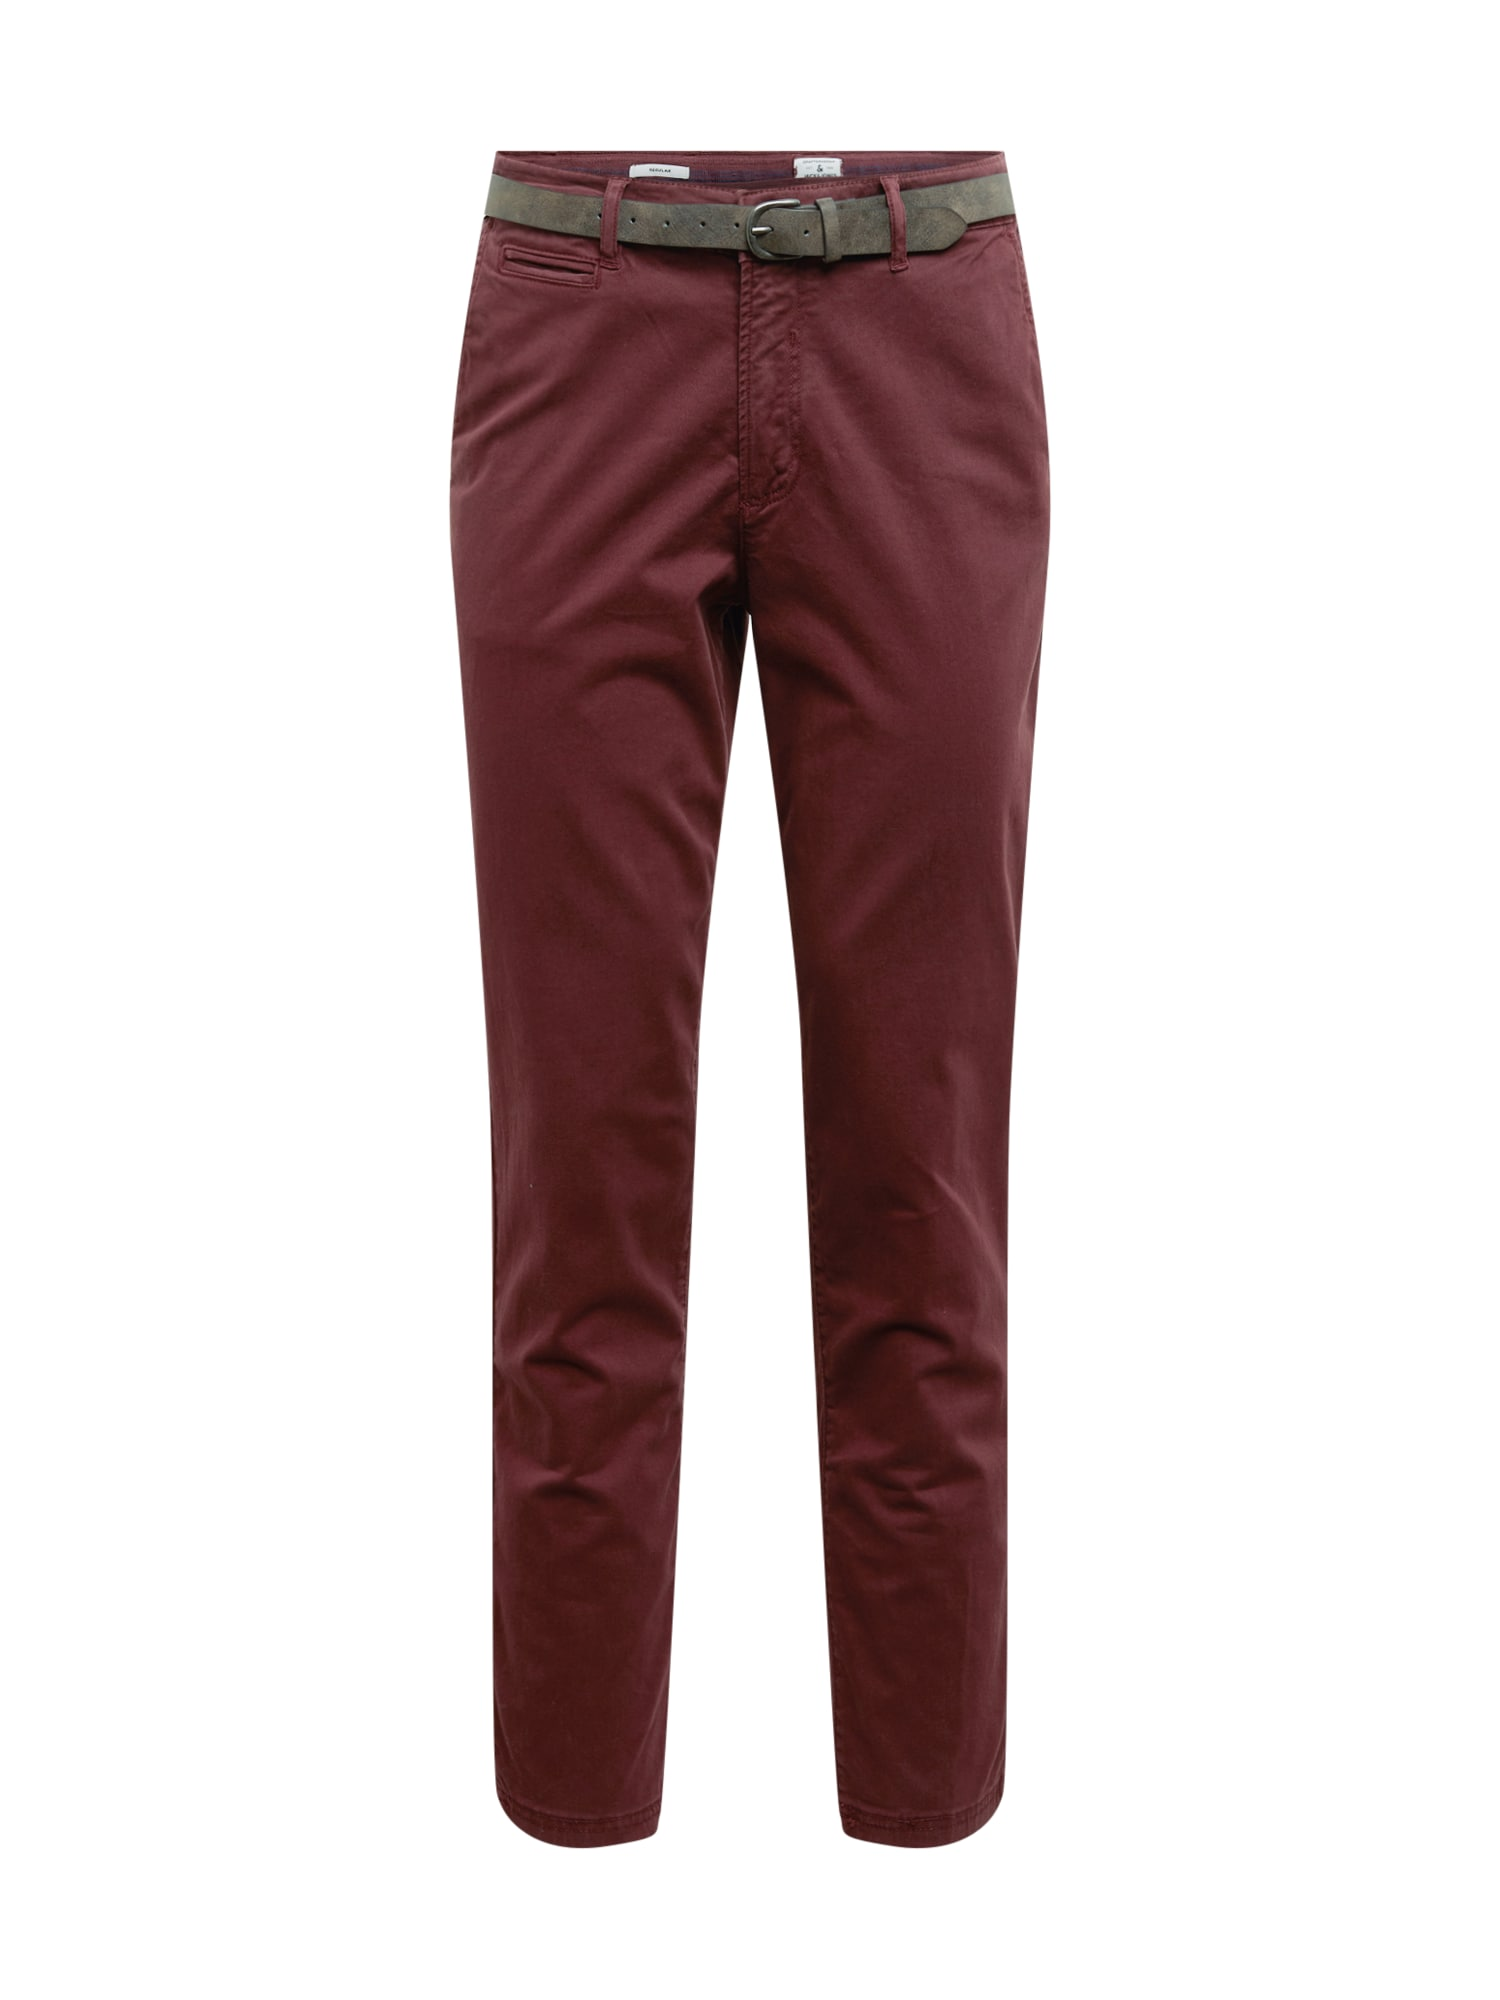 Chino kalhoty ROY JAMES bordó JACK & JONES